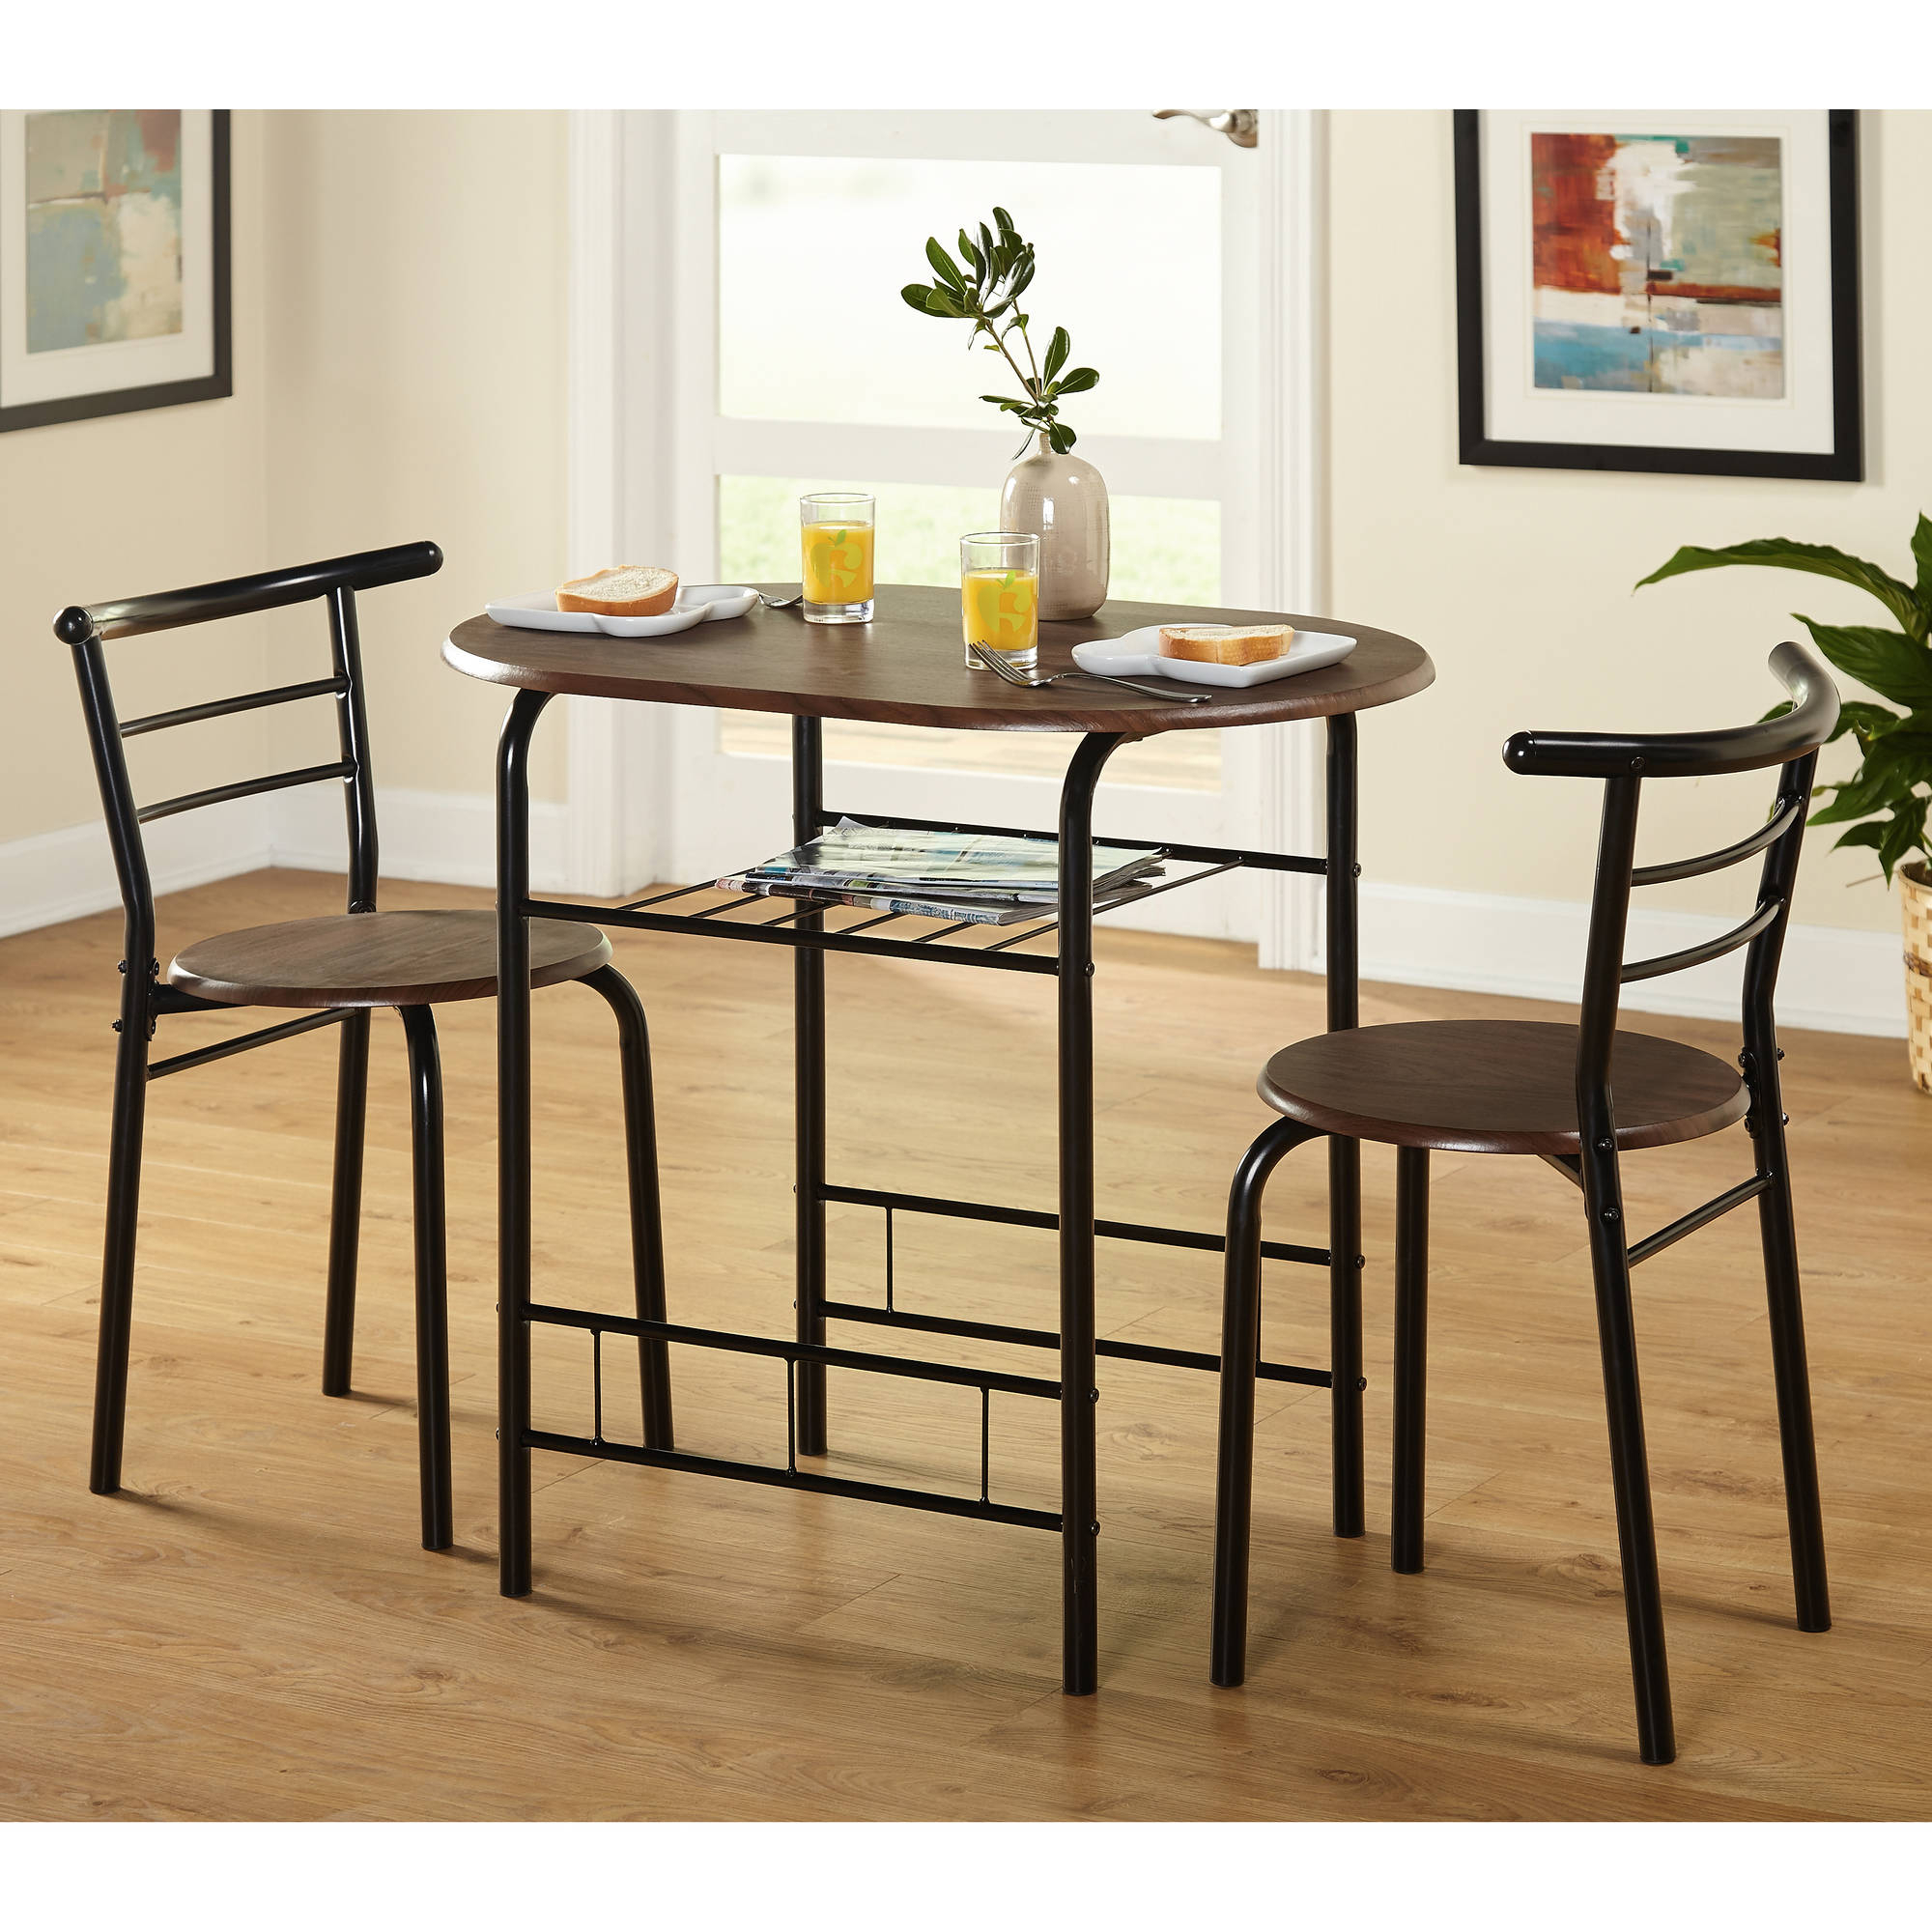 Details About Tms 3-Piece Bistro Dining Set regarding Recent 3 Pieces Dining Tables And Chair Set